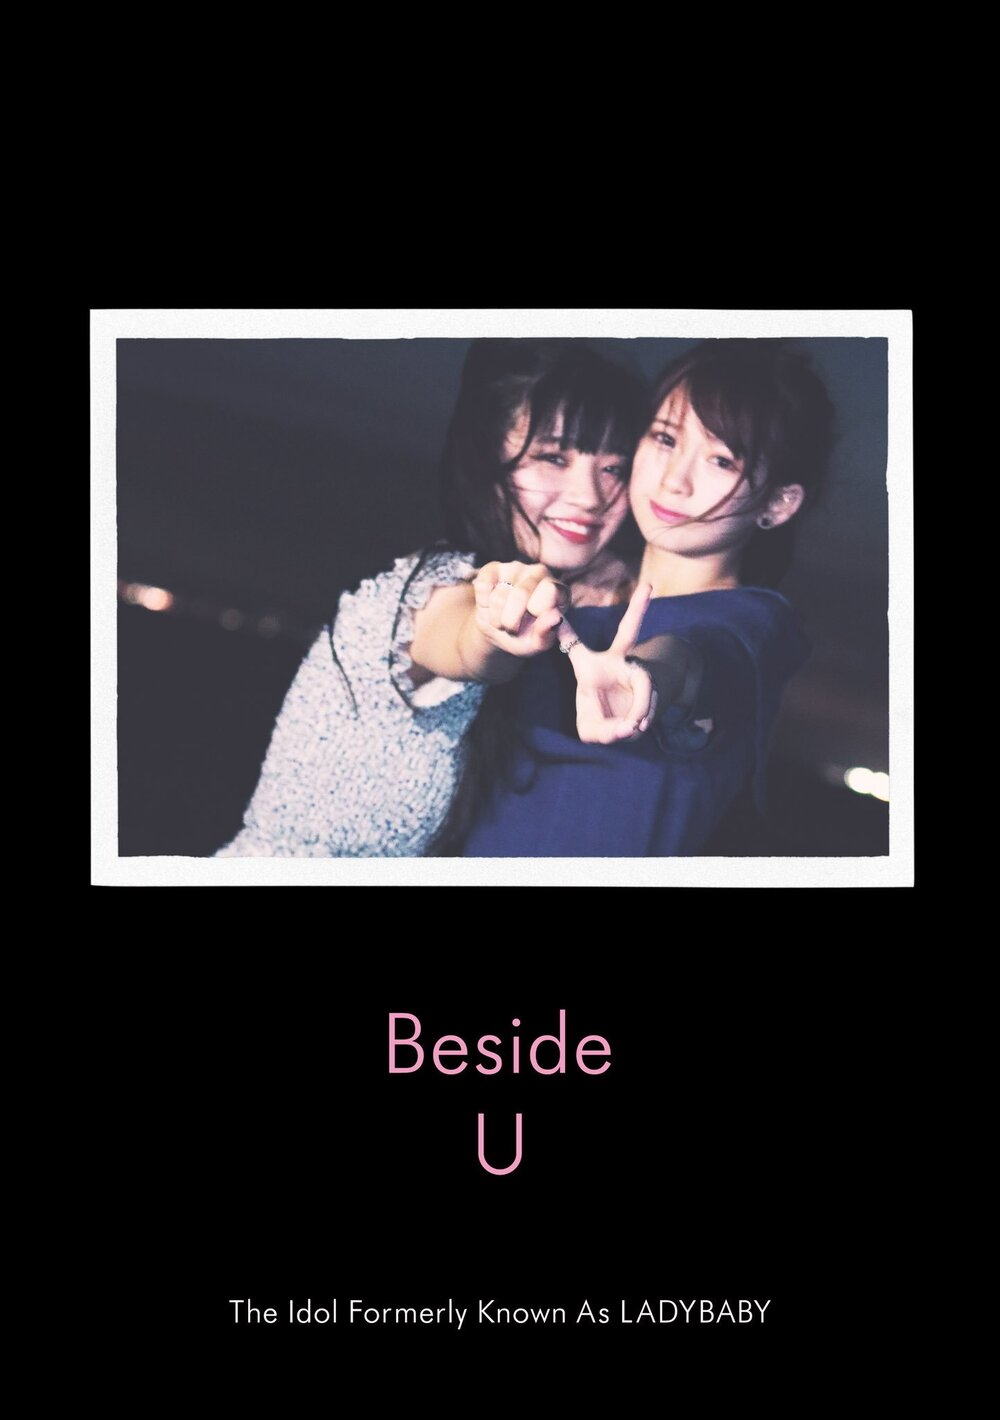 The Idol Formerly Known as Ladybaby - Beside U (2018)